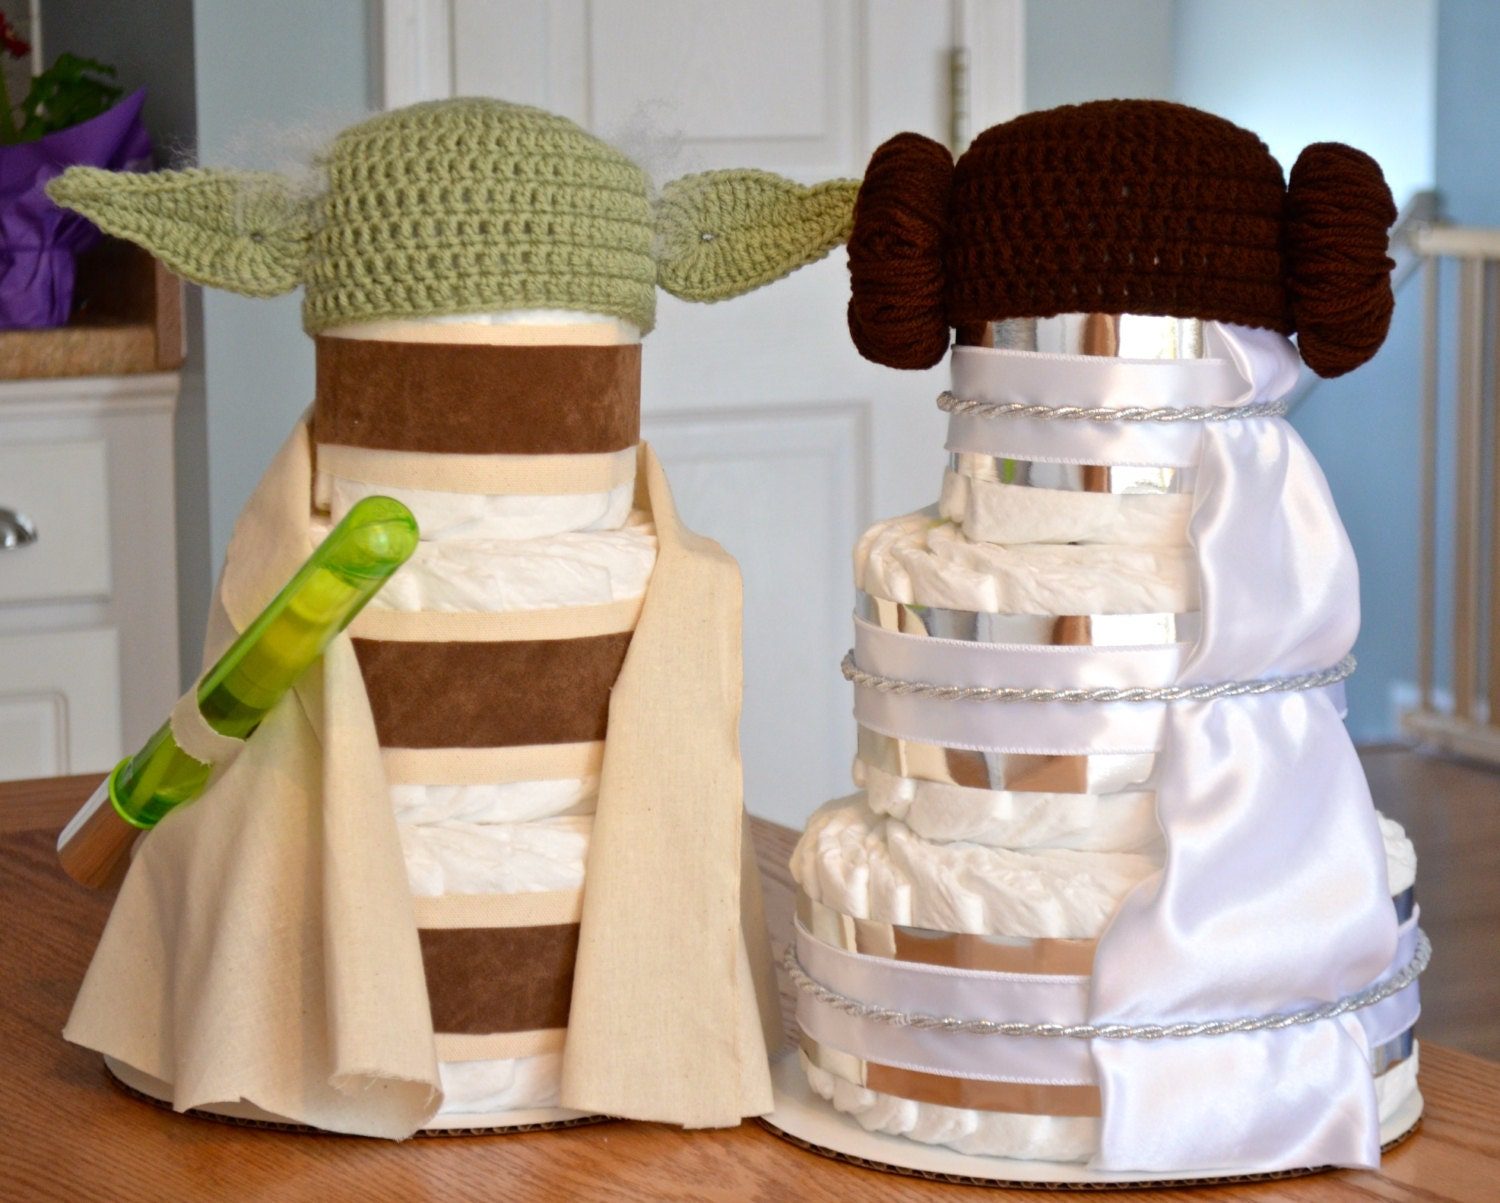 Star Wars Themed Baby Shower Centerpieces or Decorations ...